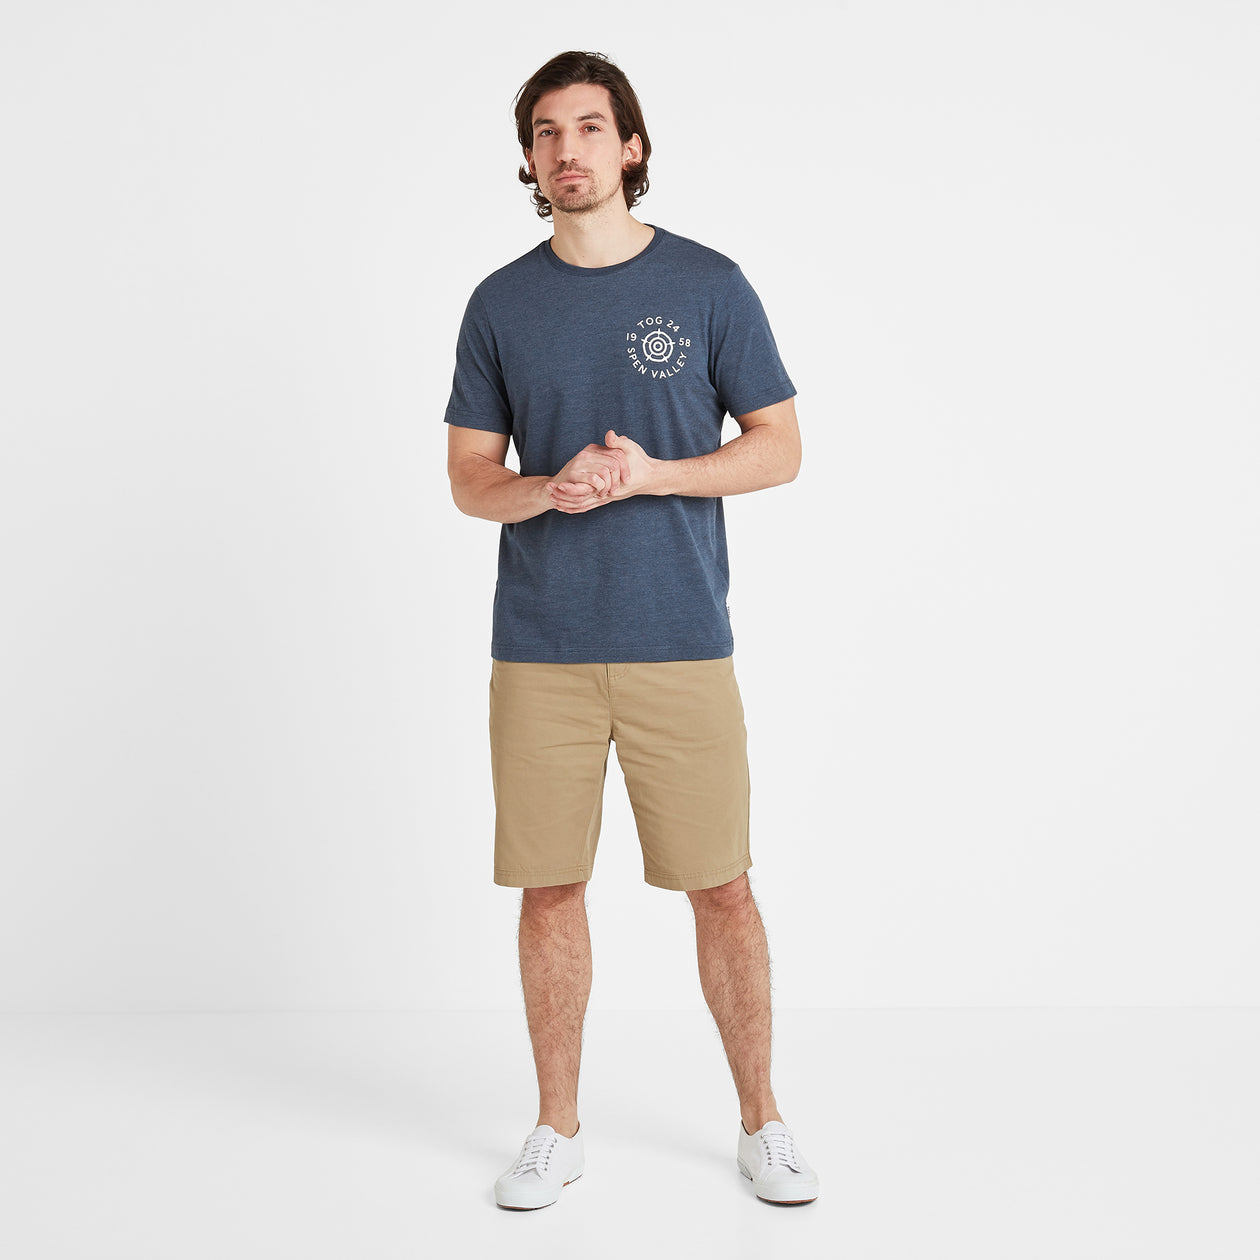 Malton Mens Graphic T-Shirt Circle - Denim Marl image 4